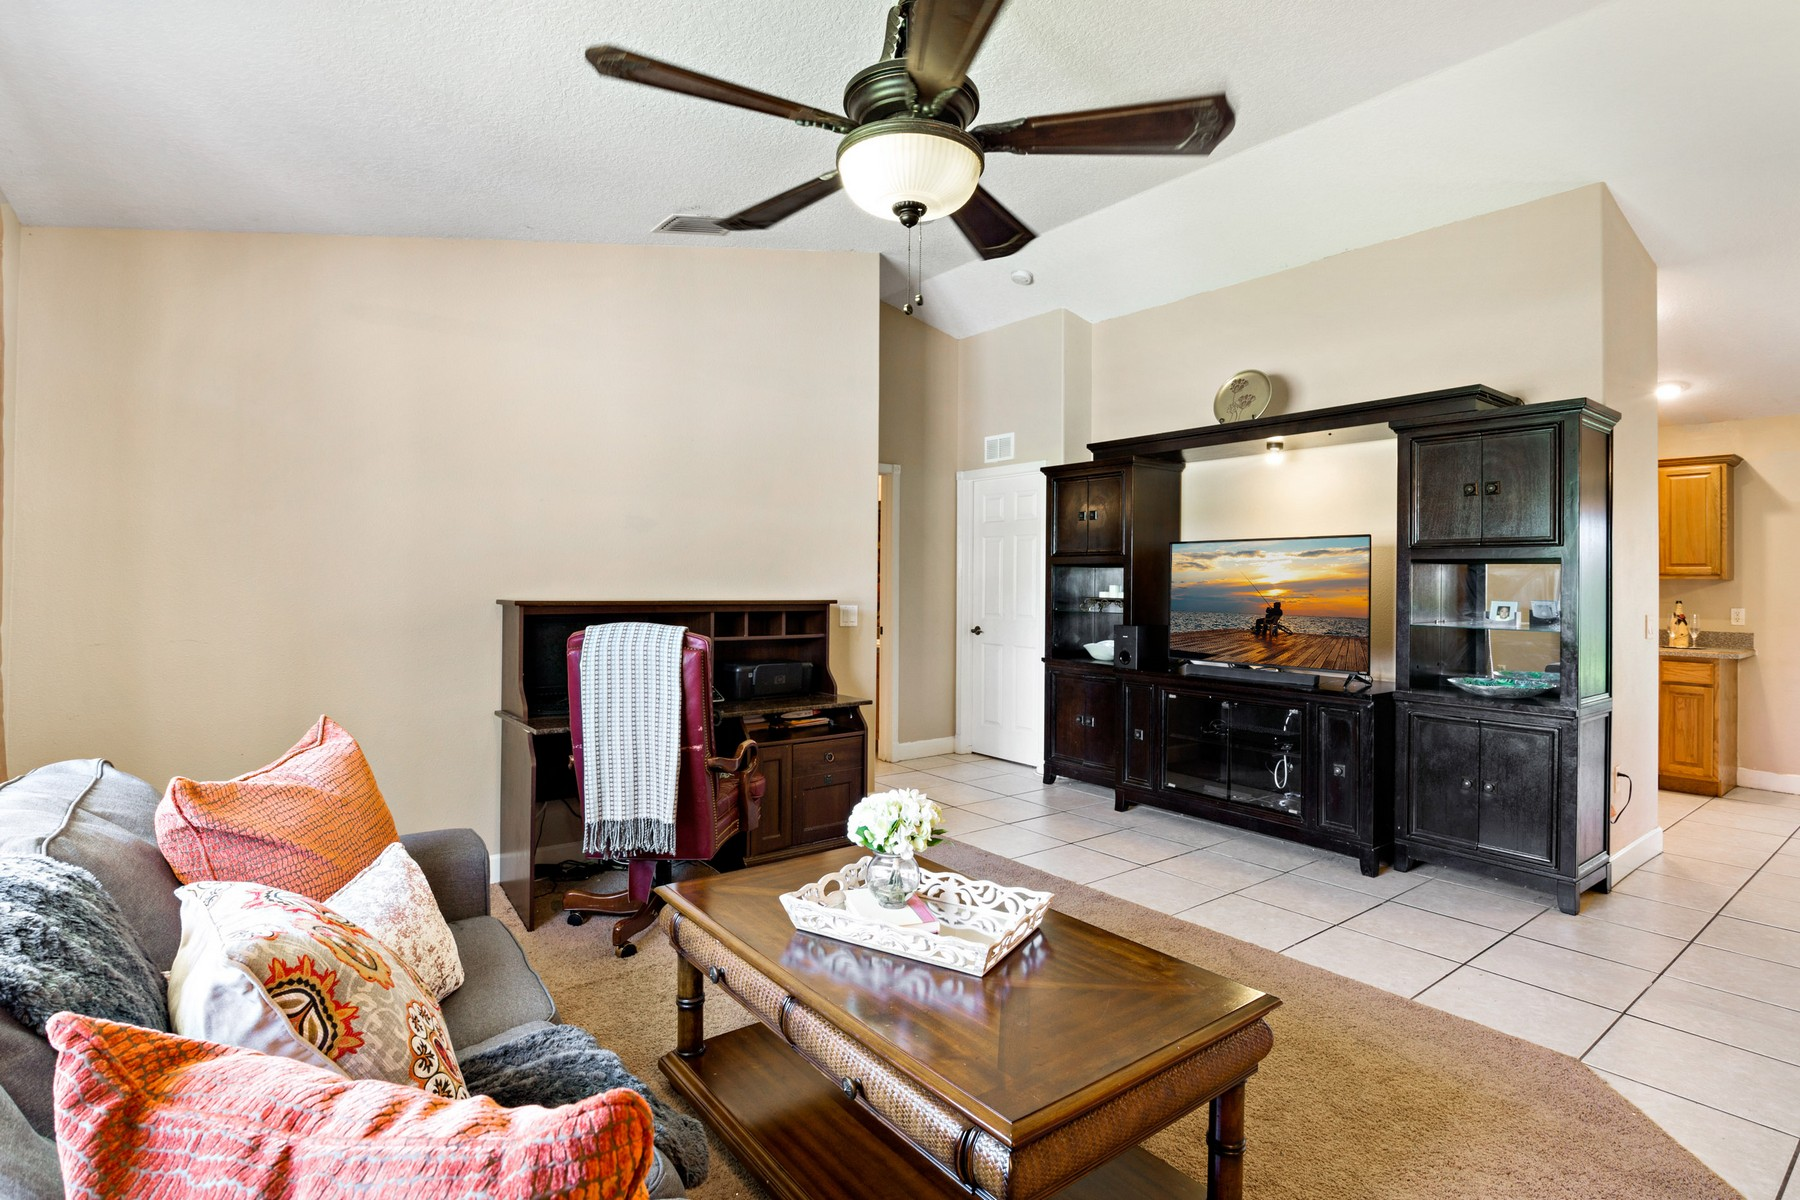 Additional photo for property listing at Live the Florida Dream! 2773 San Filippo Dr SE, Palm Bay, Florida 32909 Vereinigte Staaten